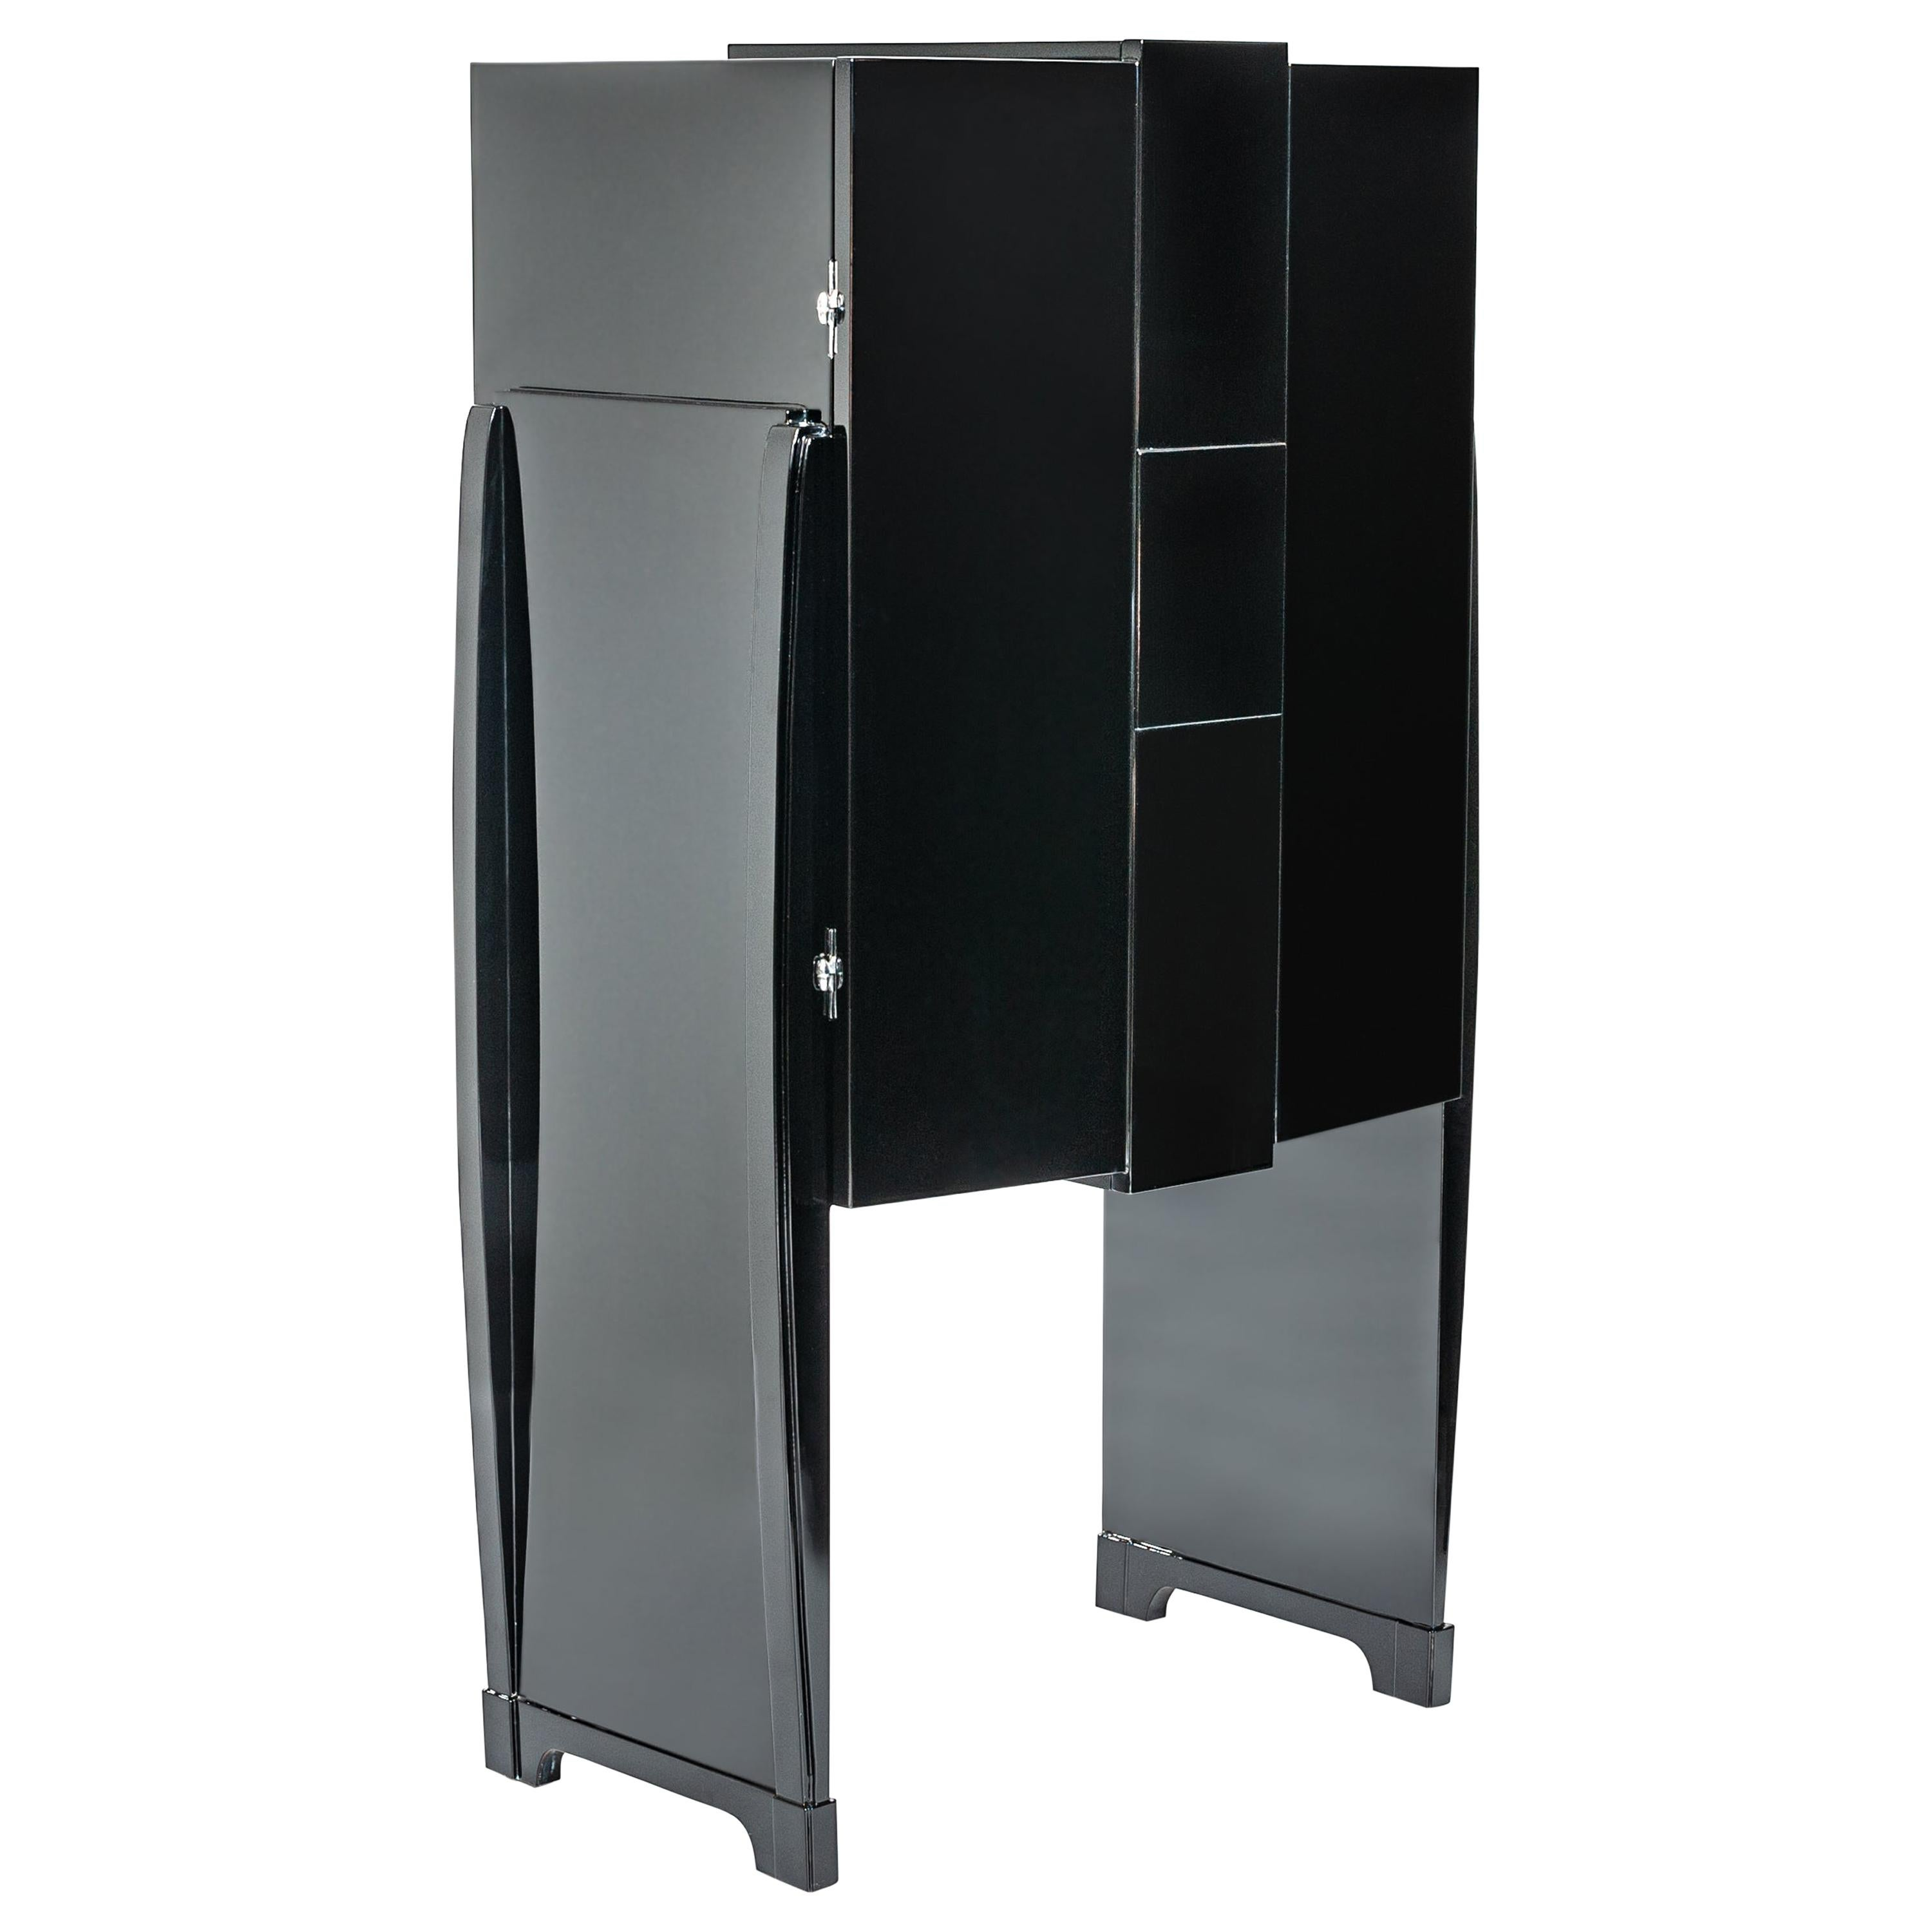 French Cubistic Art Deco Bar Cabinet High-Gloss Finish Black from the 1930s